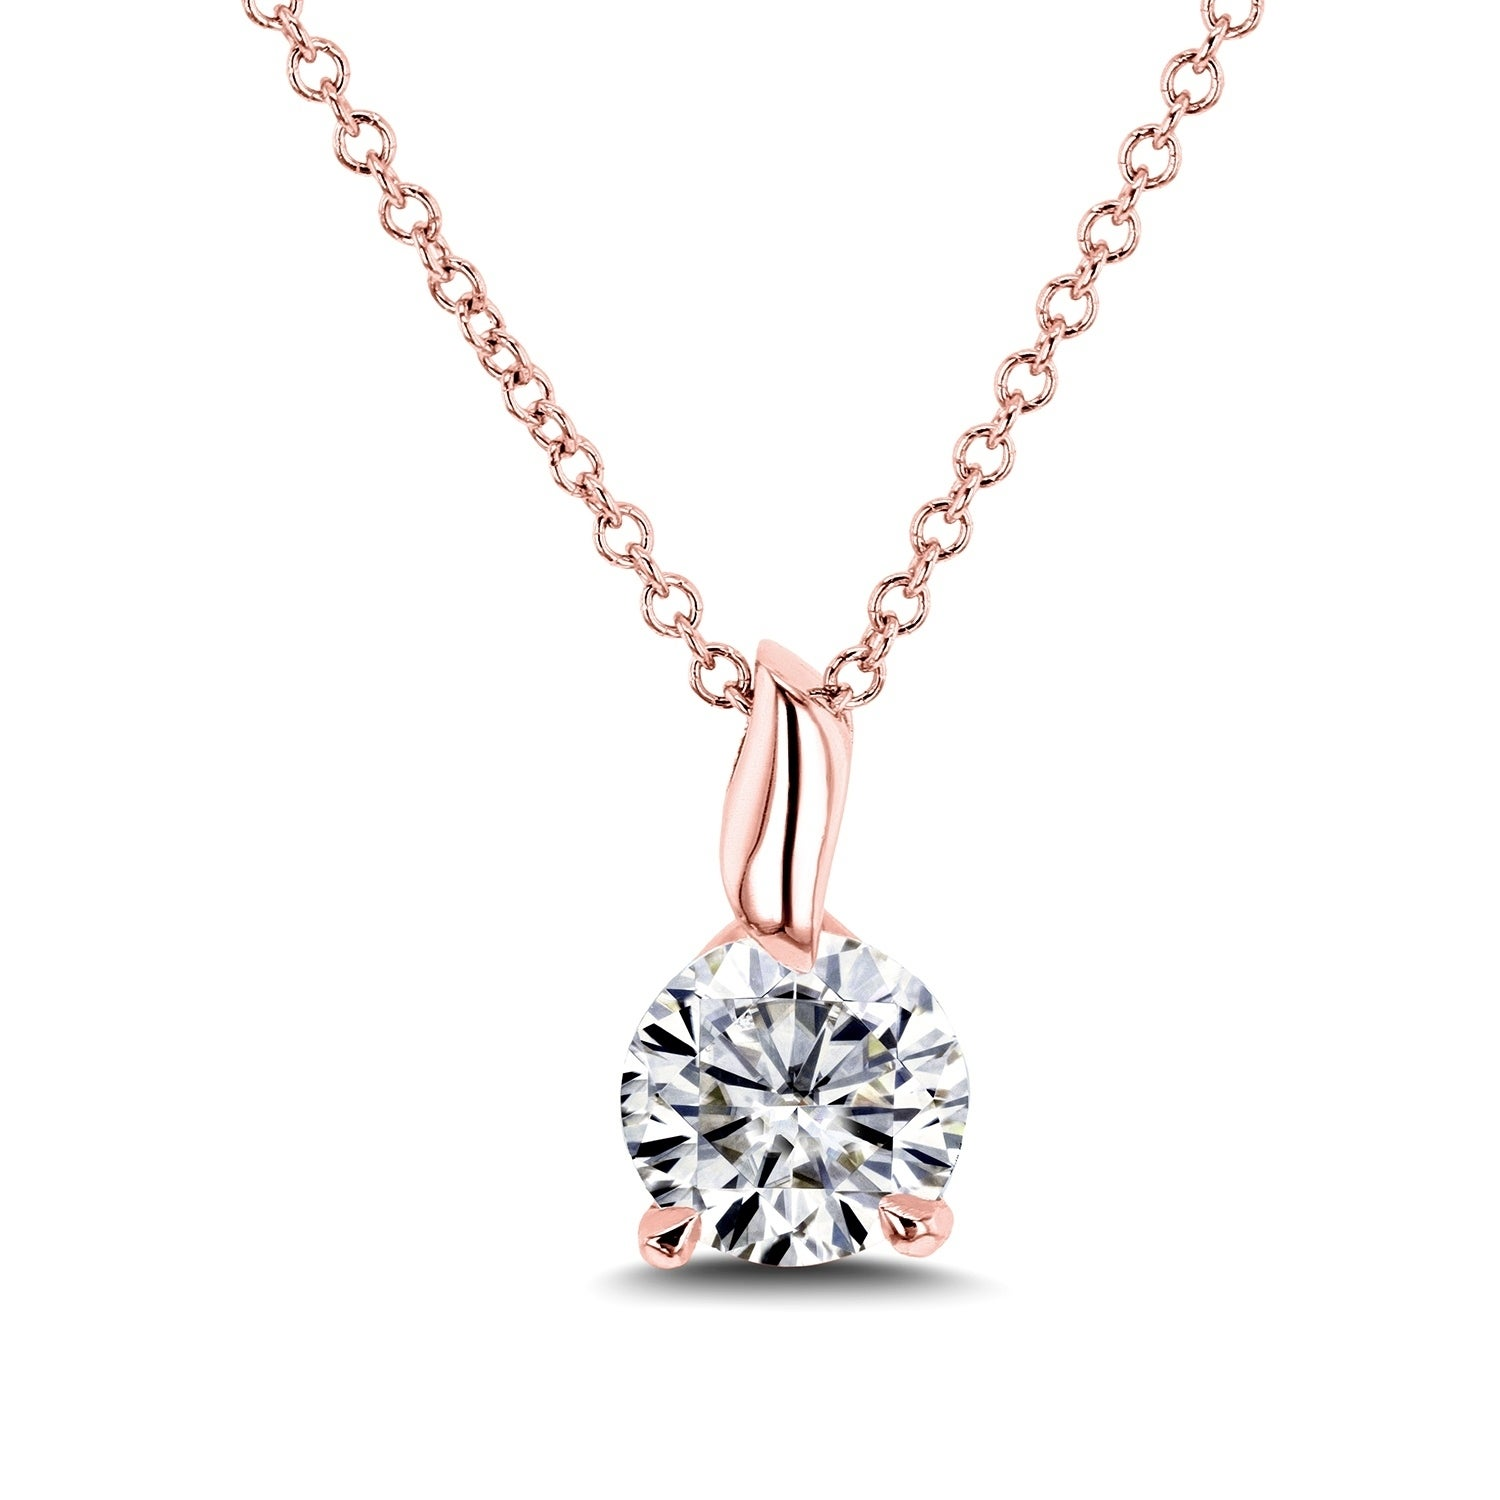 necklace solitaire image necklaces brilliant moissanite colvard w charles pendants gold princess dwt forever pendant